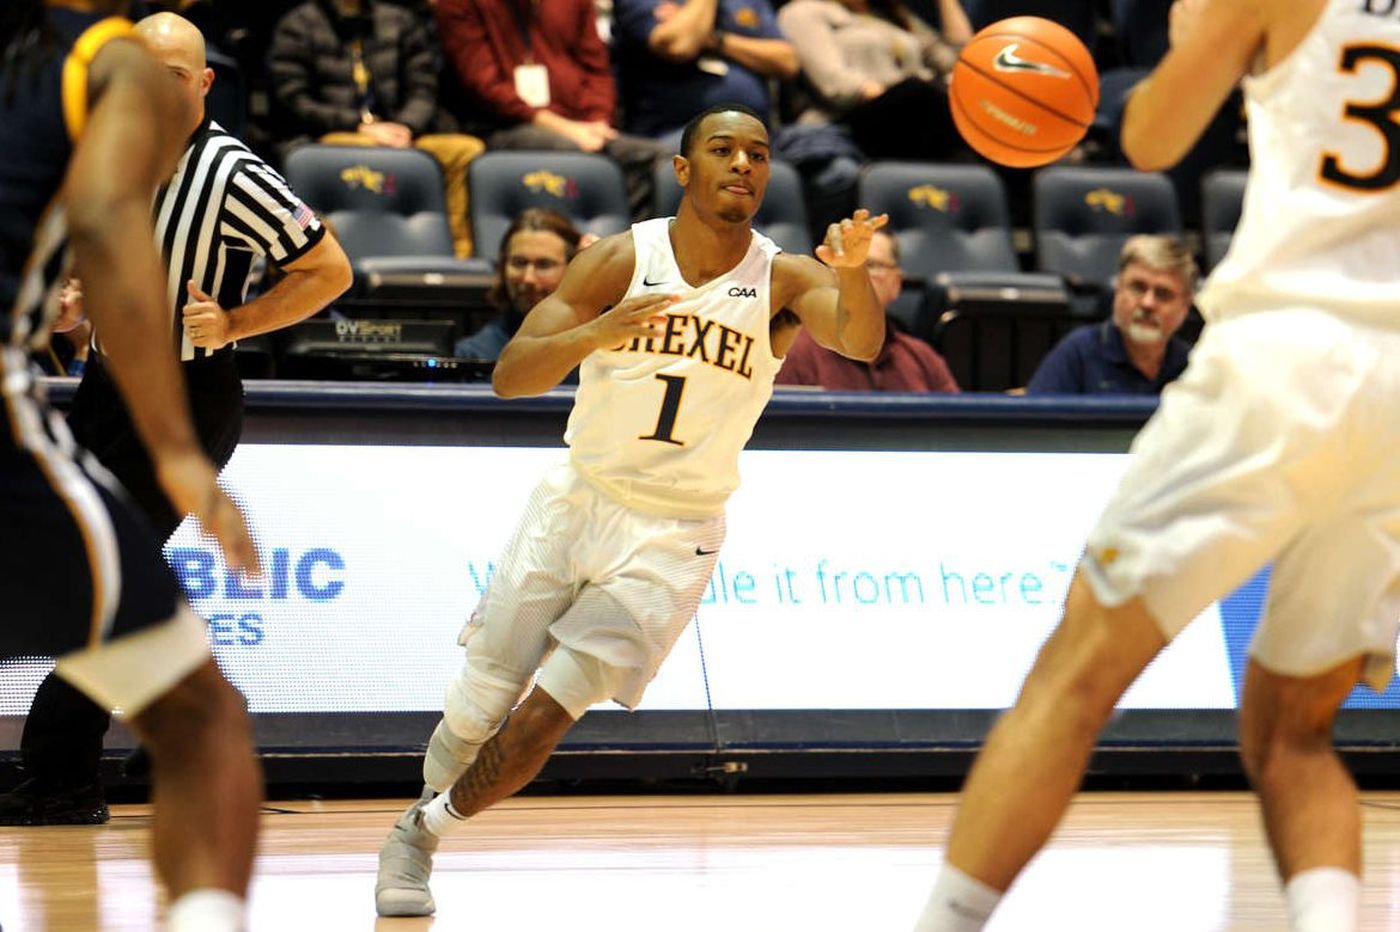 Thursday's City Six game preview: Drexel at Towson